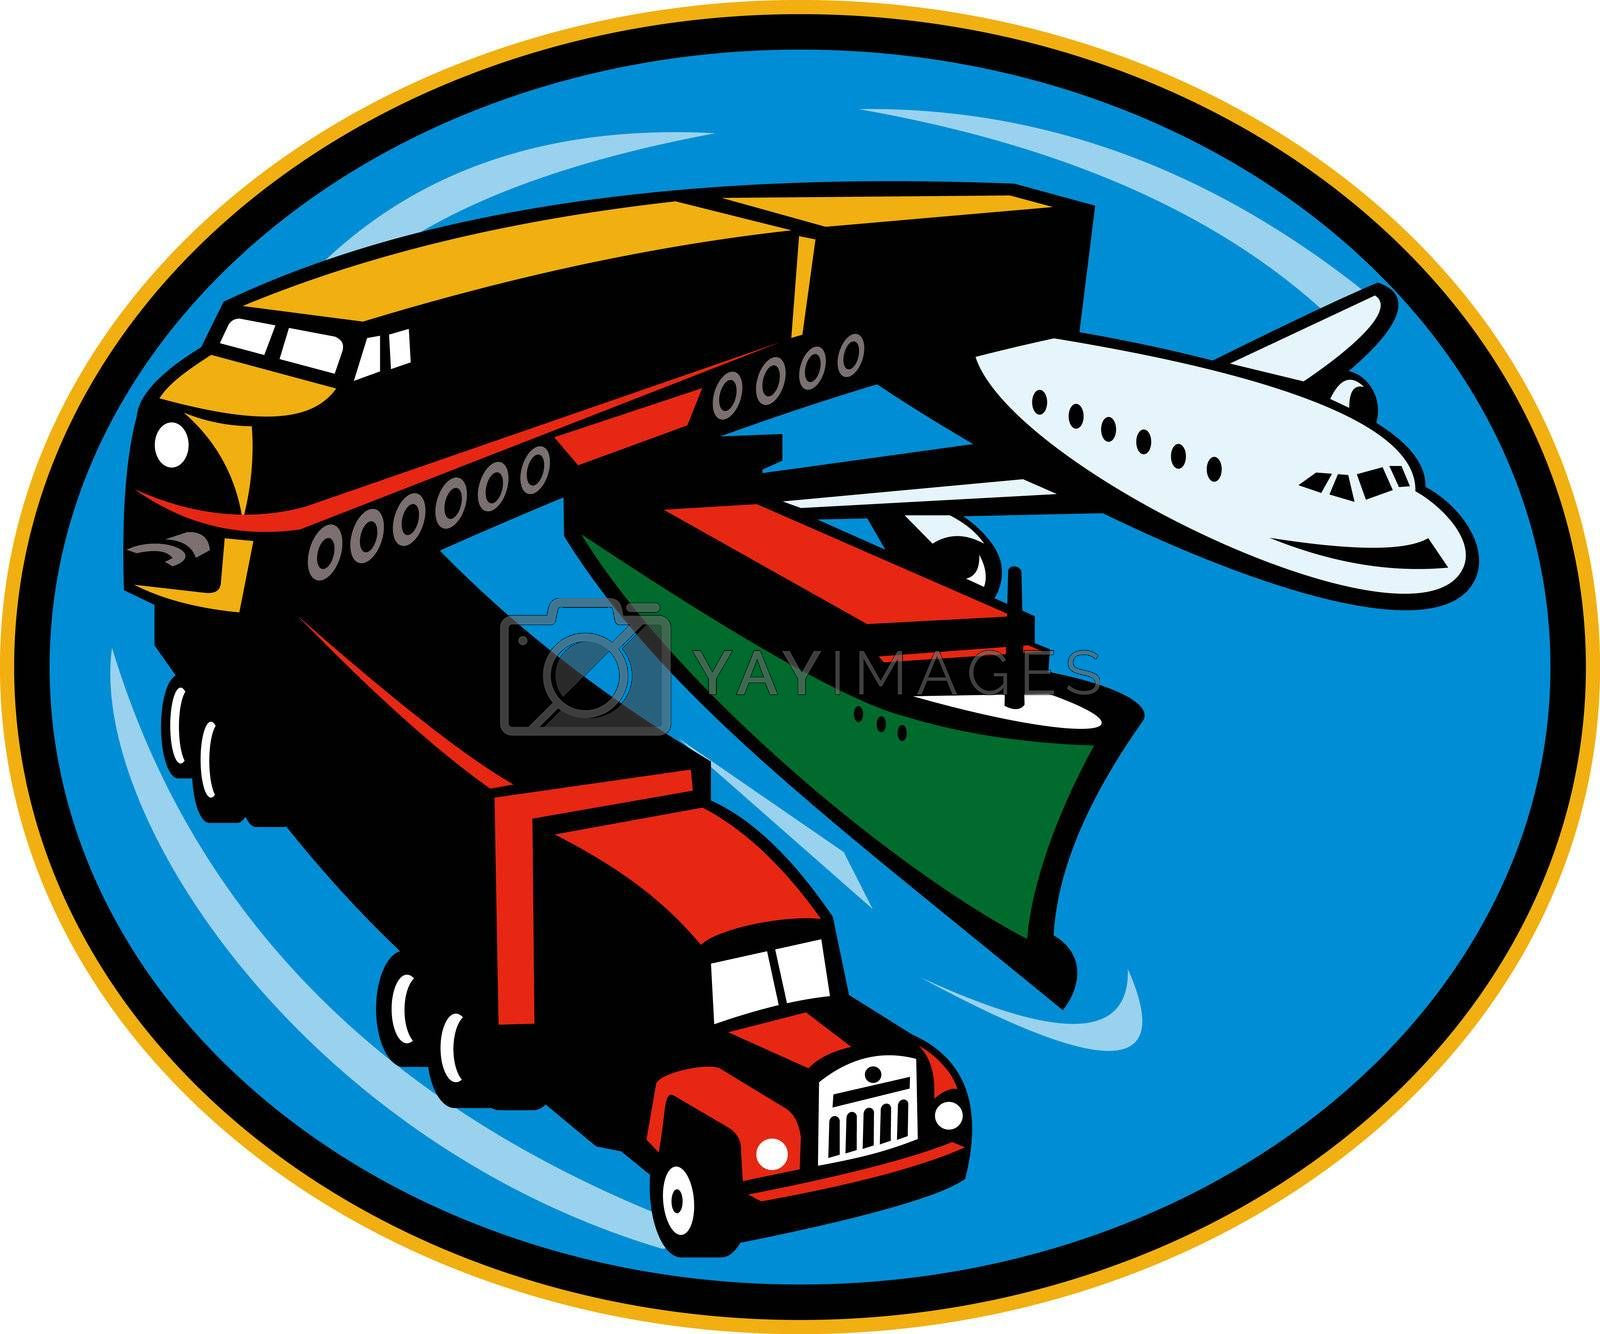 Train, truck, container ship and airplane travel by patrimonio